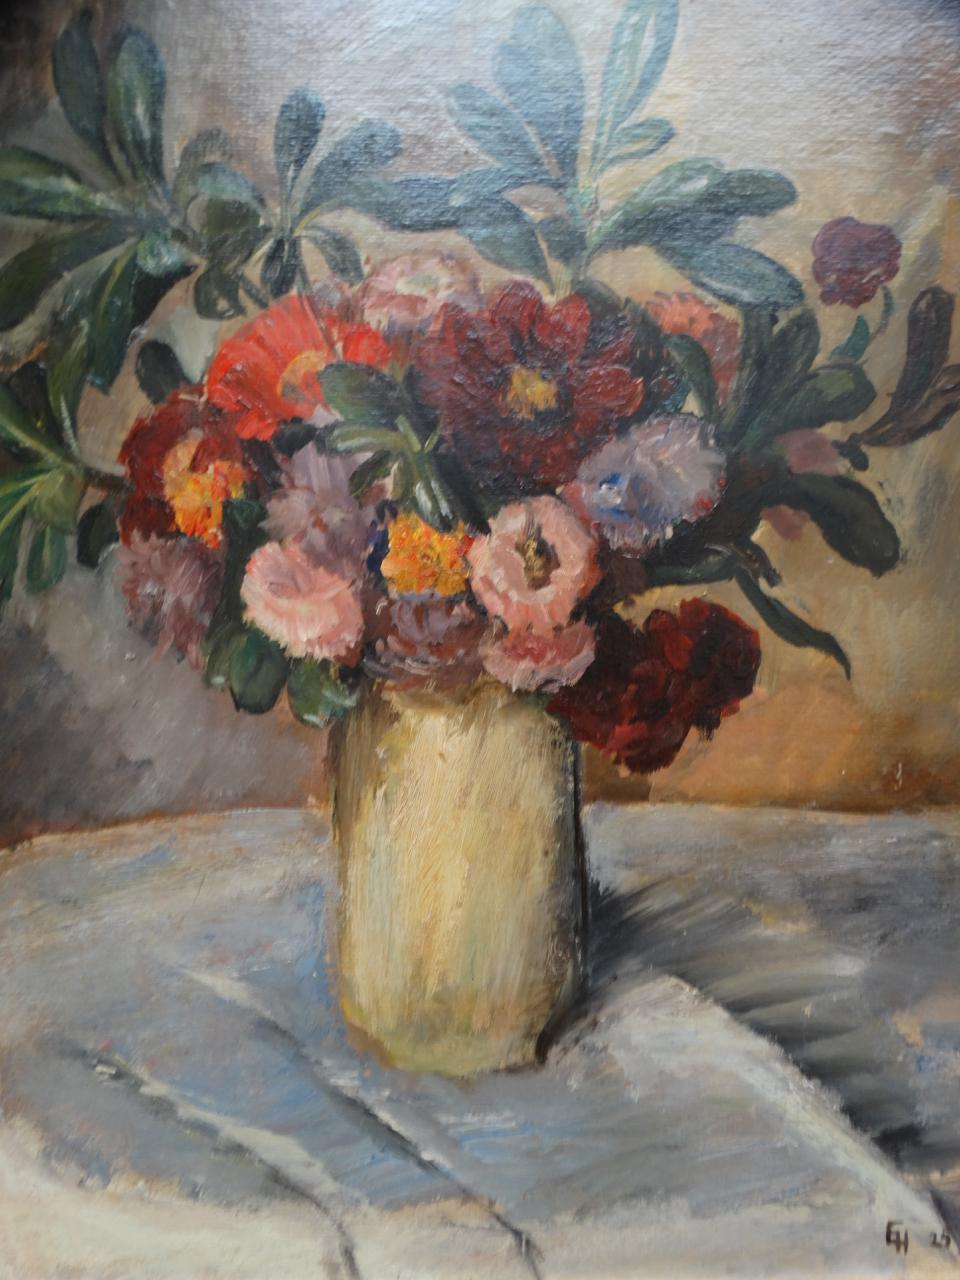 225 & 1920s Vintage Ejnar Hansen Still Life Flowers in a Yellow Vase Painting